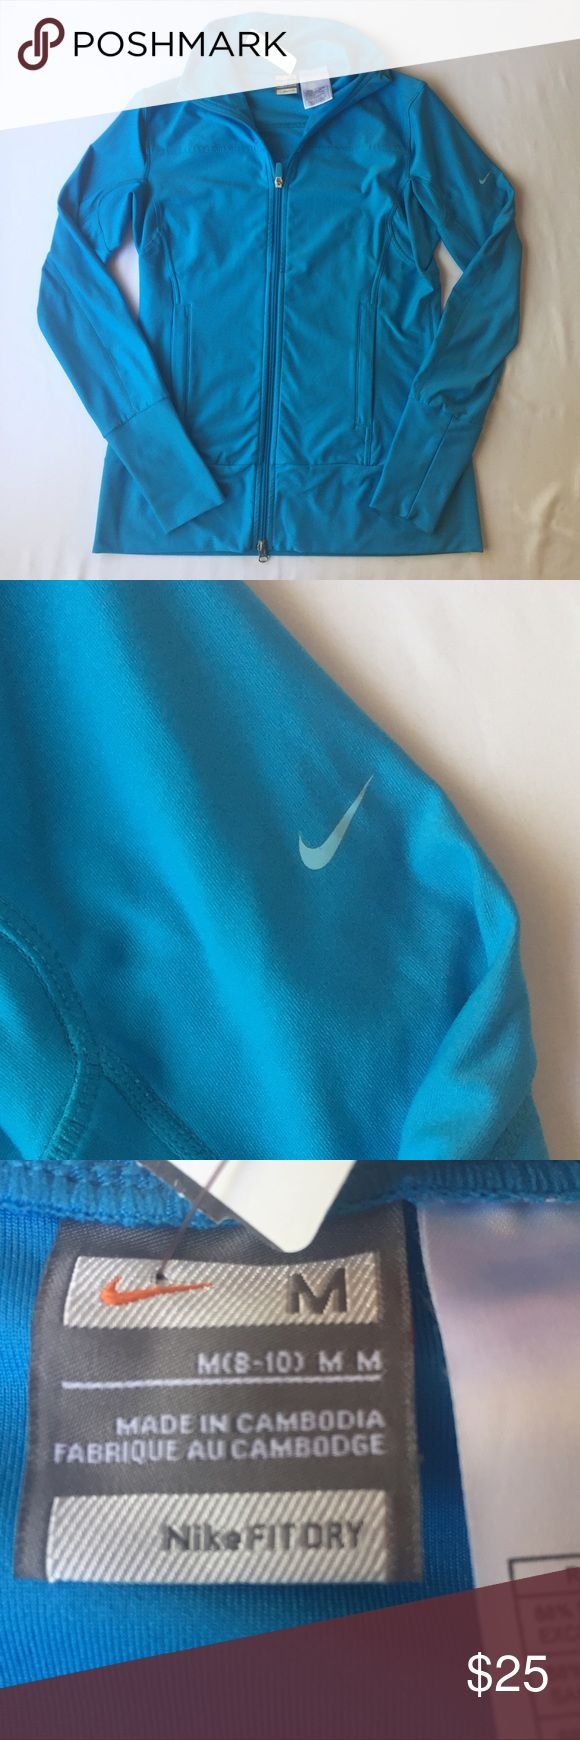 Nike Blue Zip up Jacket, M This sweet Nike Blue Zip up Jacket, M is perfect for any athletic adventure you may embark on! In excellent condition, no defects and comes from a smoke/pet free home. Nike Tops Sweatshirts & Hoodies